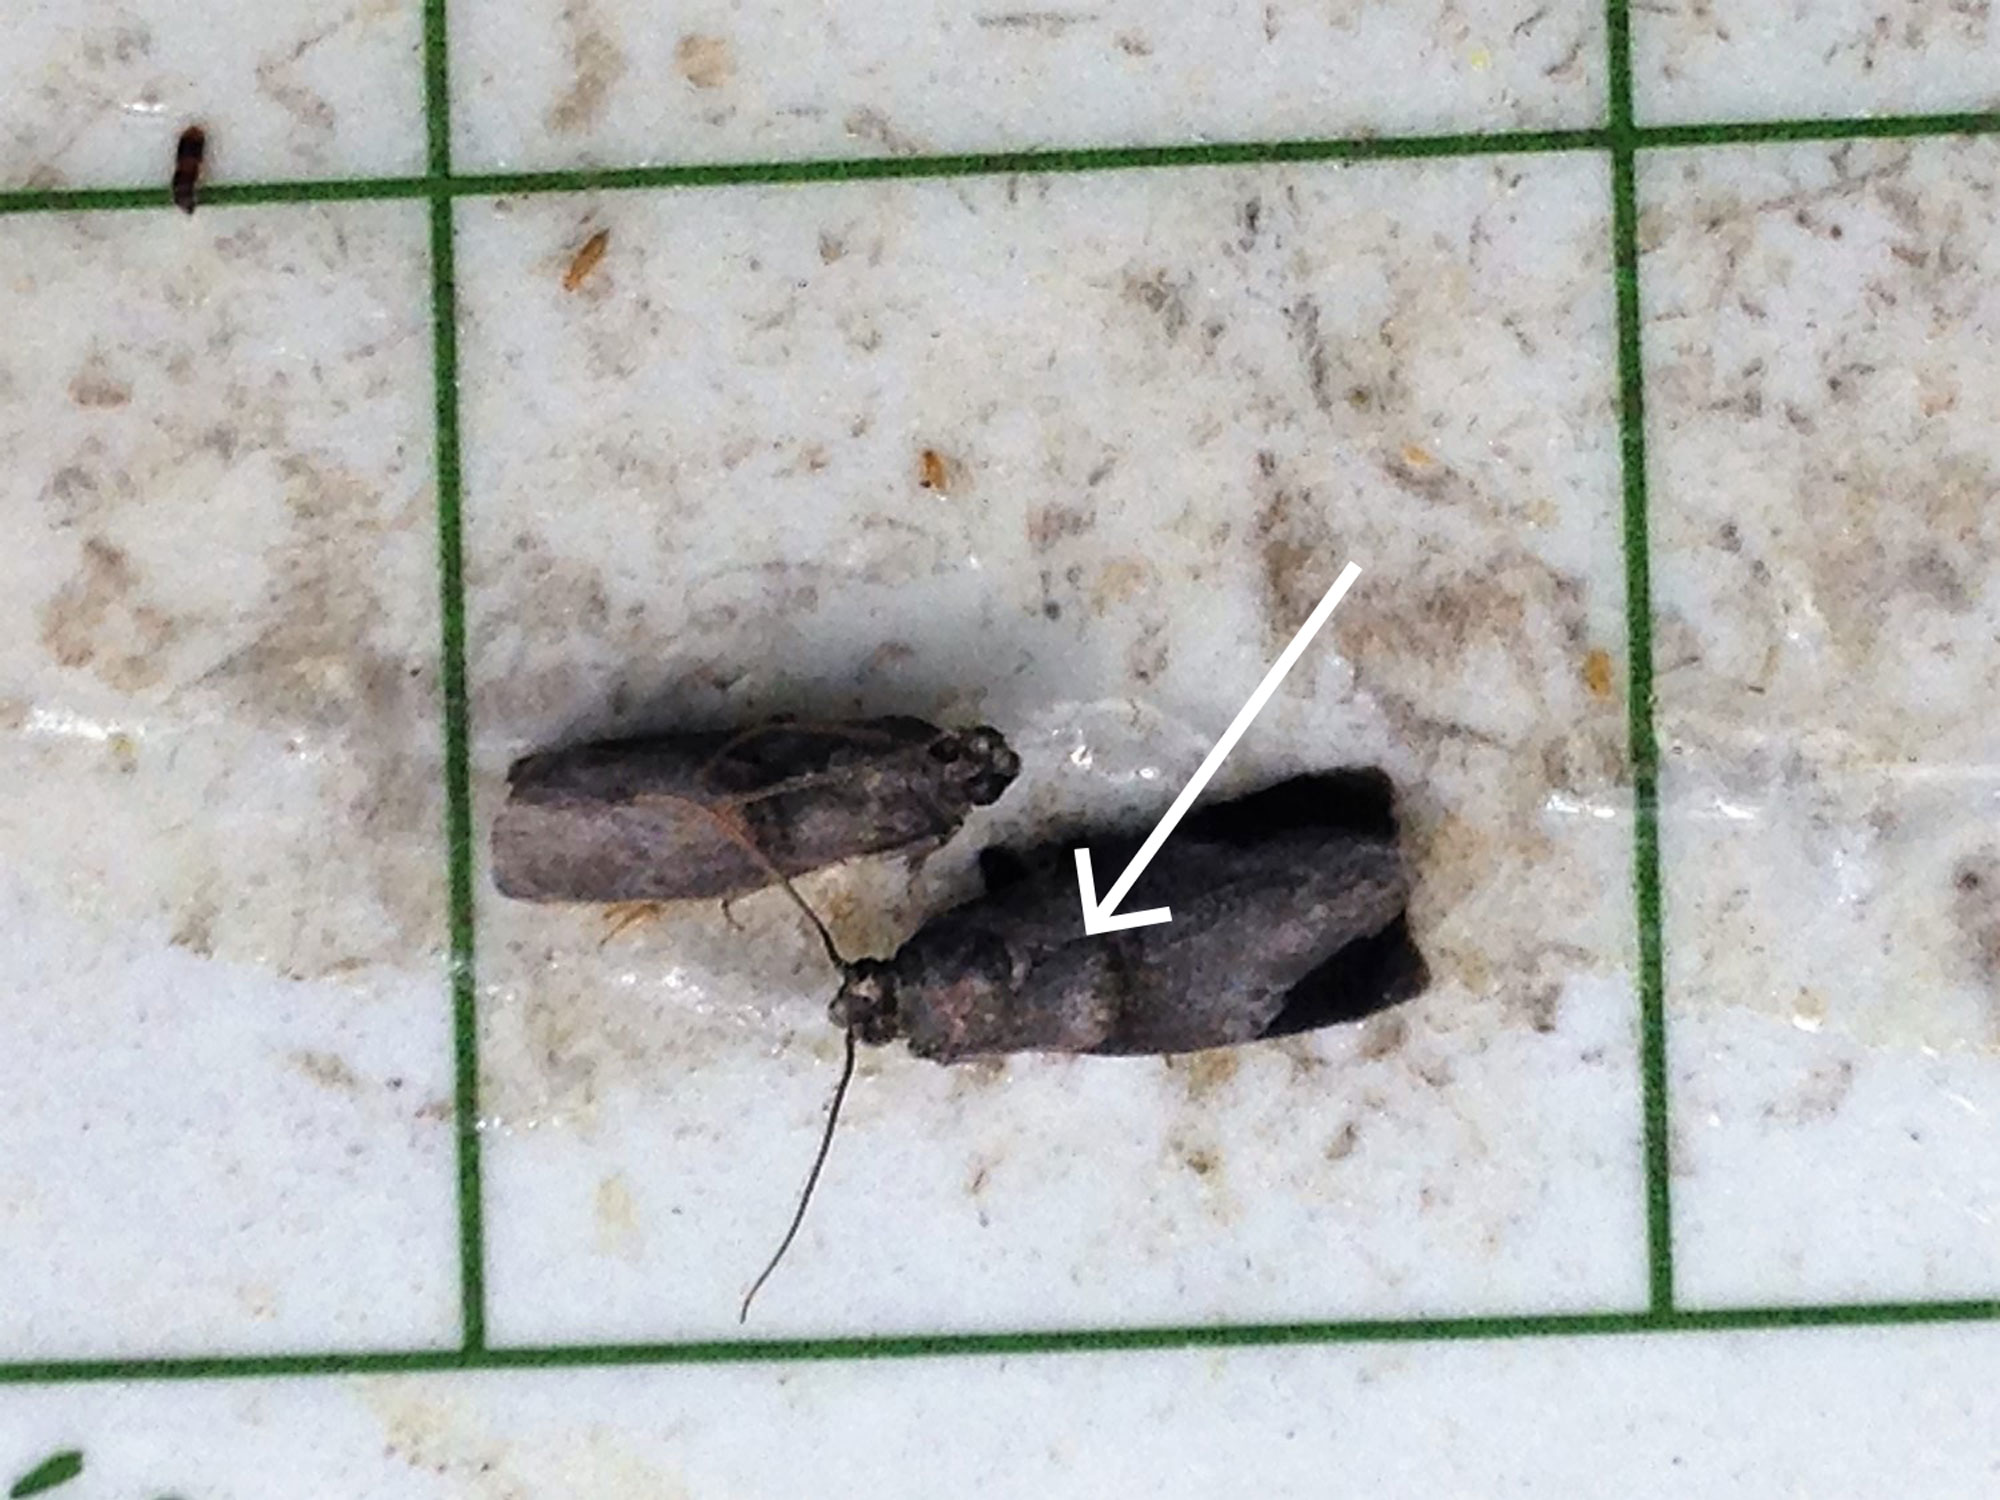 Arrows pointing to the ridge of scales on the forewing of a male pecan nut casebearer moth.